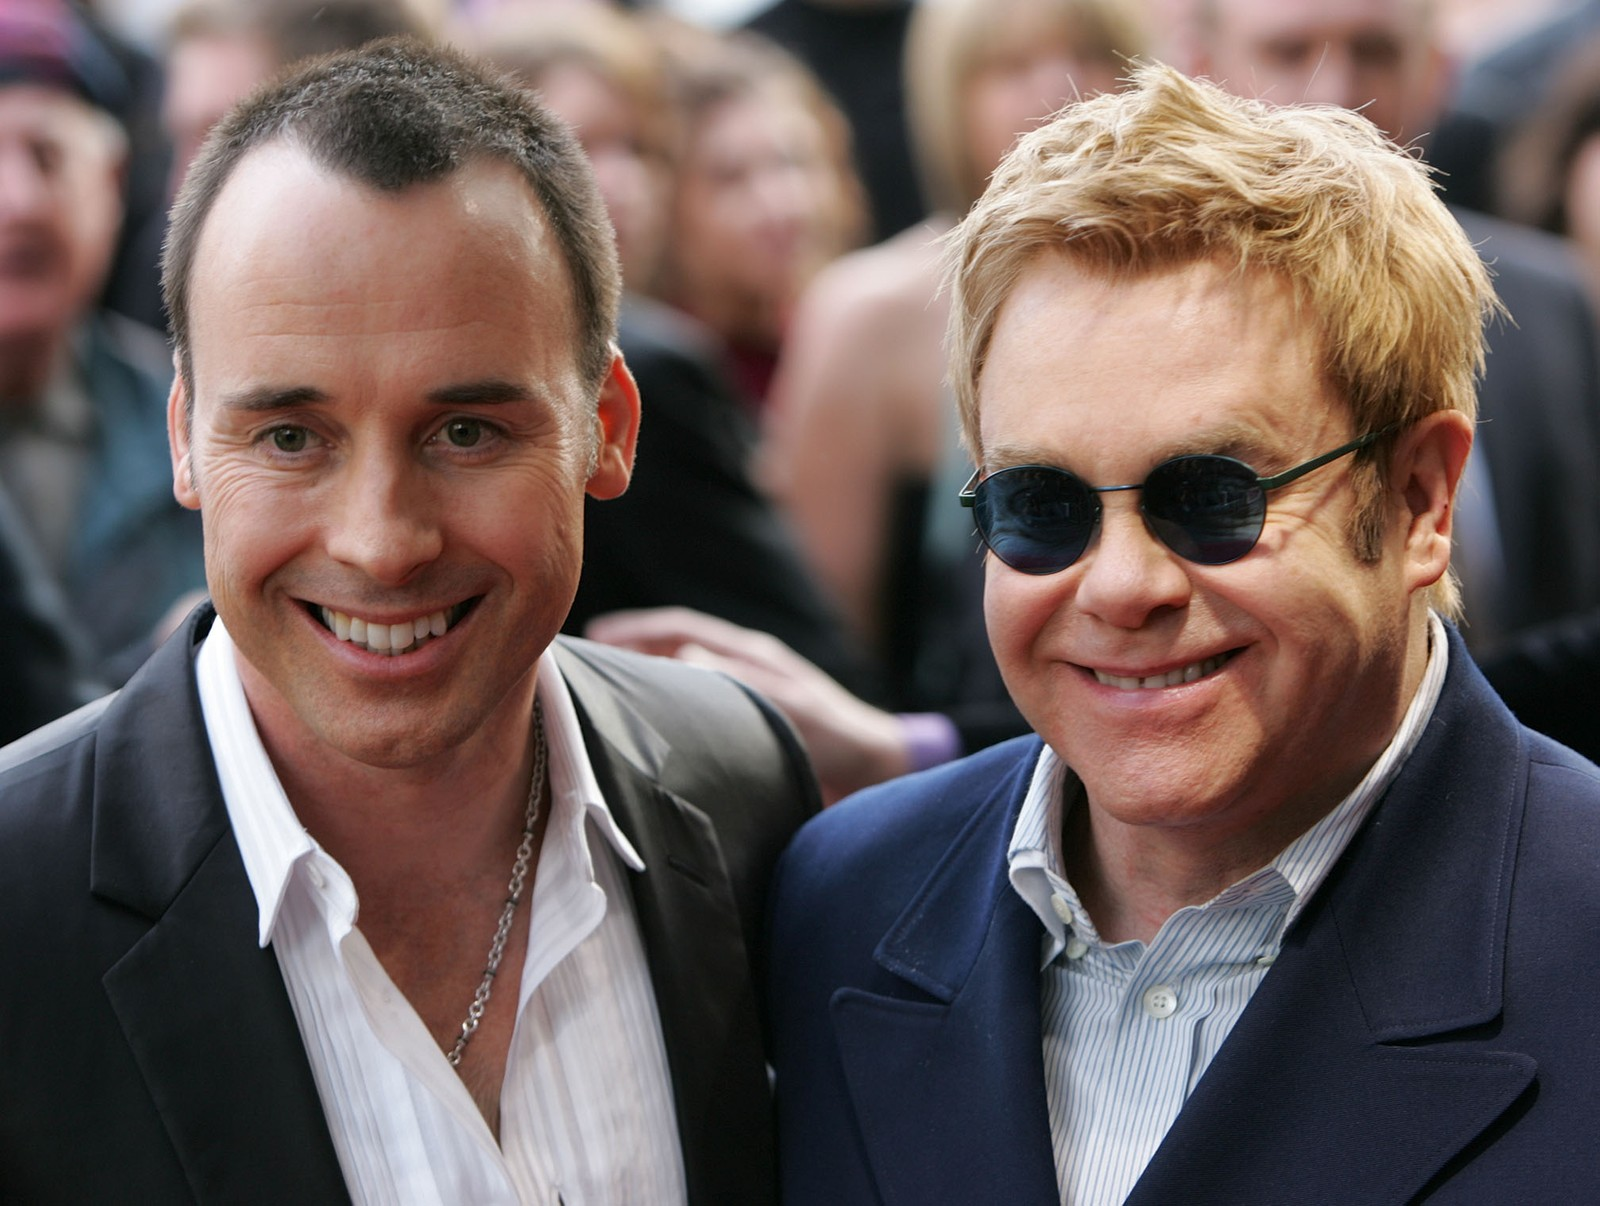 2005: Saman på verdspremiere av musikalen «Billy Elliot» i London 12. mai. David Furnish og Elton John inngjekk partnerskap 21. desember same år. Furnish laga dokumentaren Elton John: Tantrums & Tiaras i 1997. Dei har to søner.